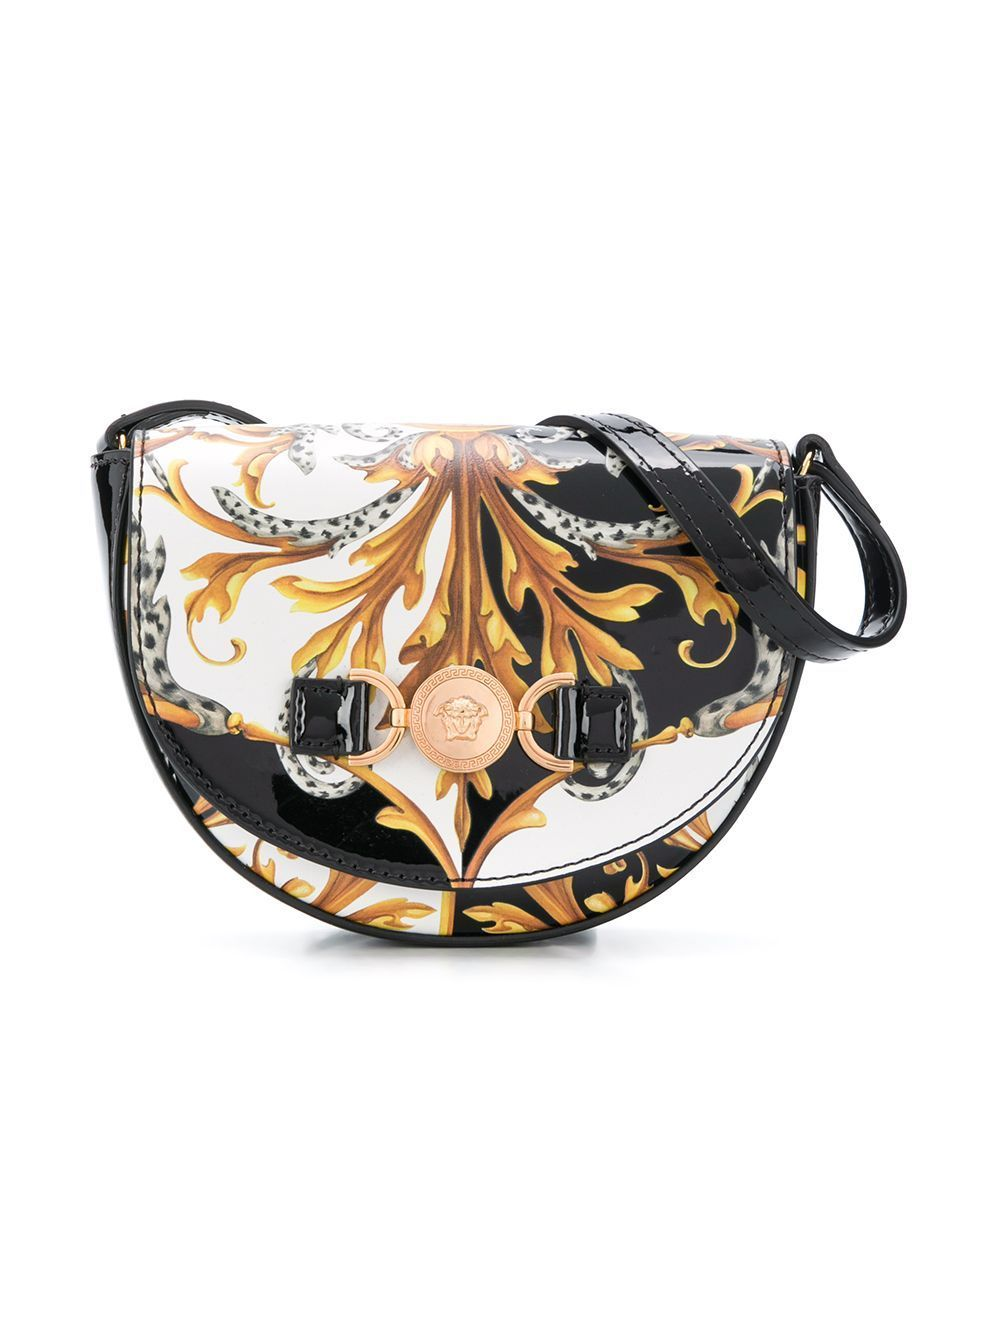 VERSACE KIDS Baroque Print Shoulder Bag - Maison De Fashion